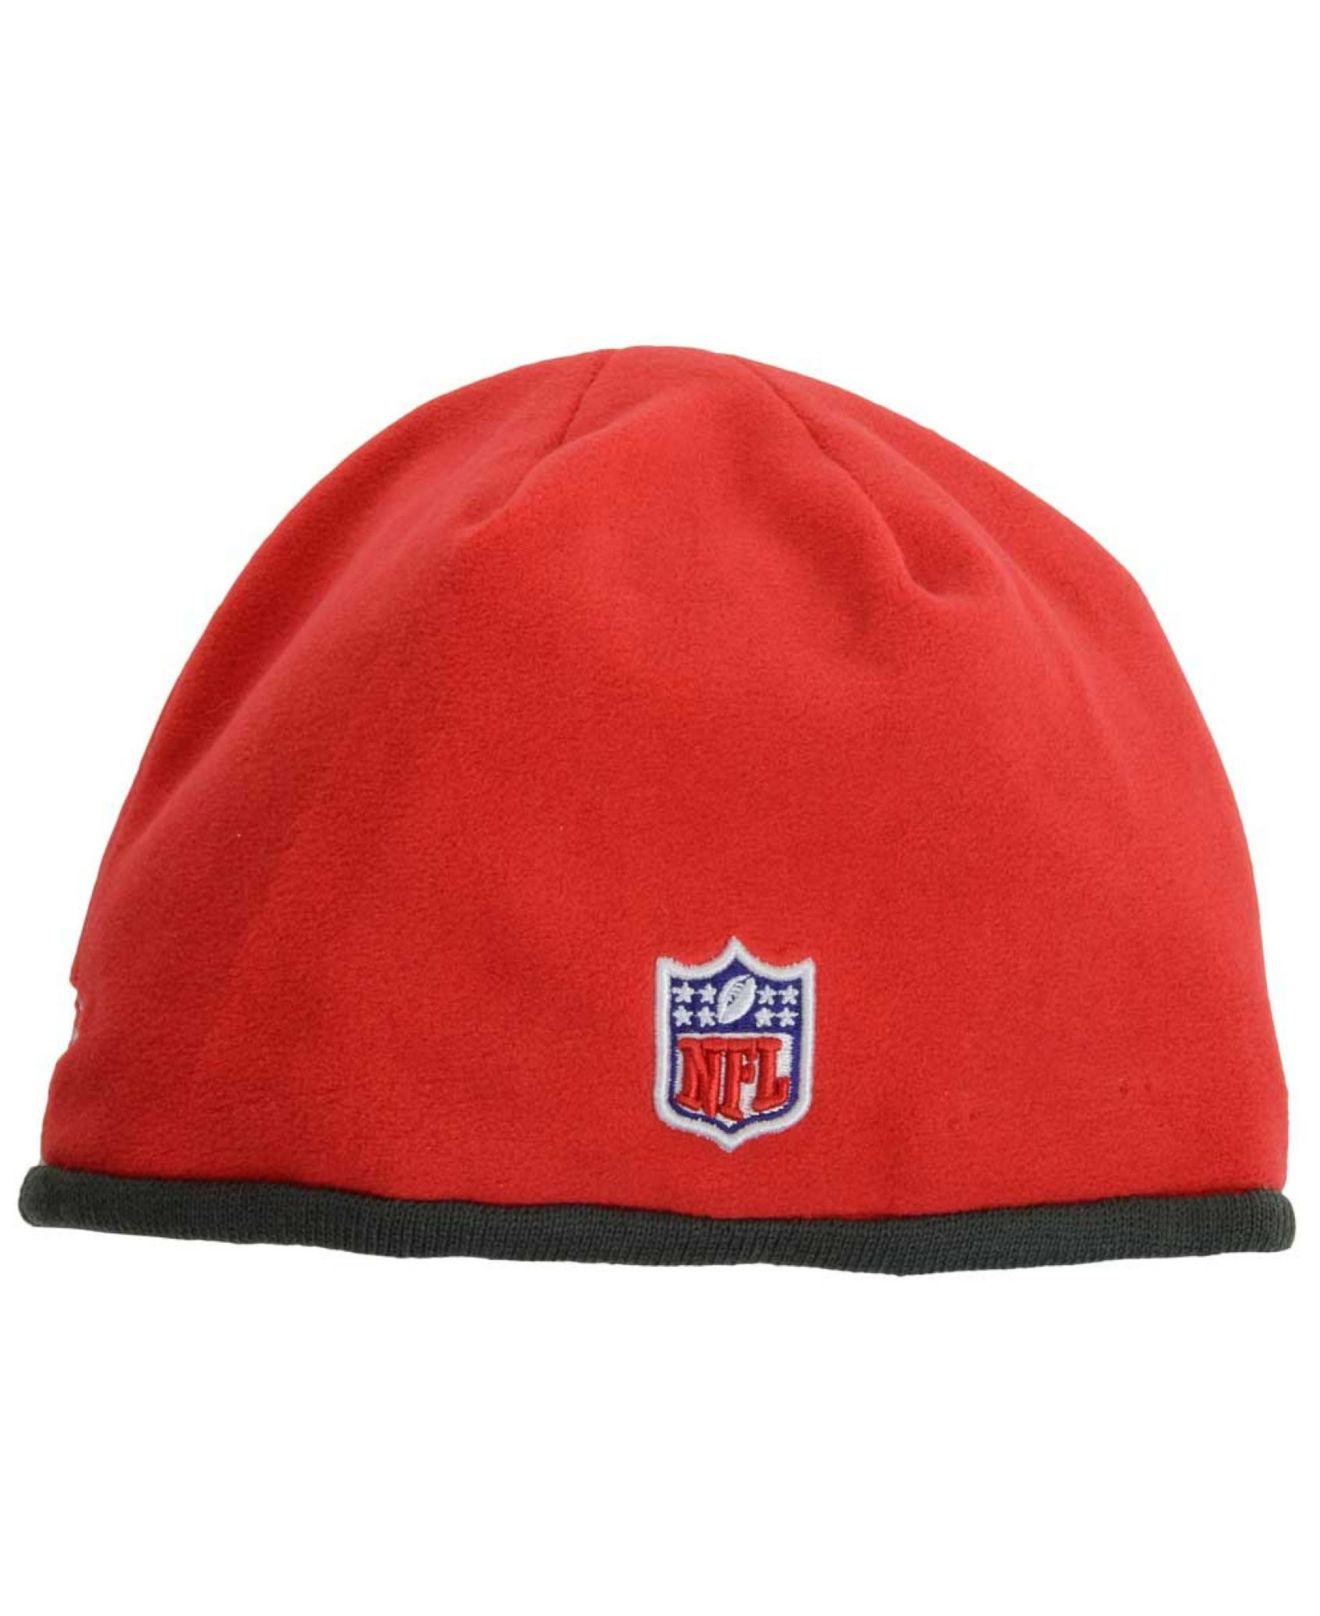 newest 08beb 13139 Lyst - KTZ Tampa Bay Buccaneers Tech Knit Hat in Red for Men